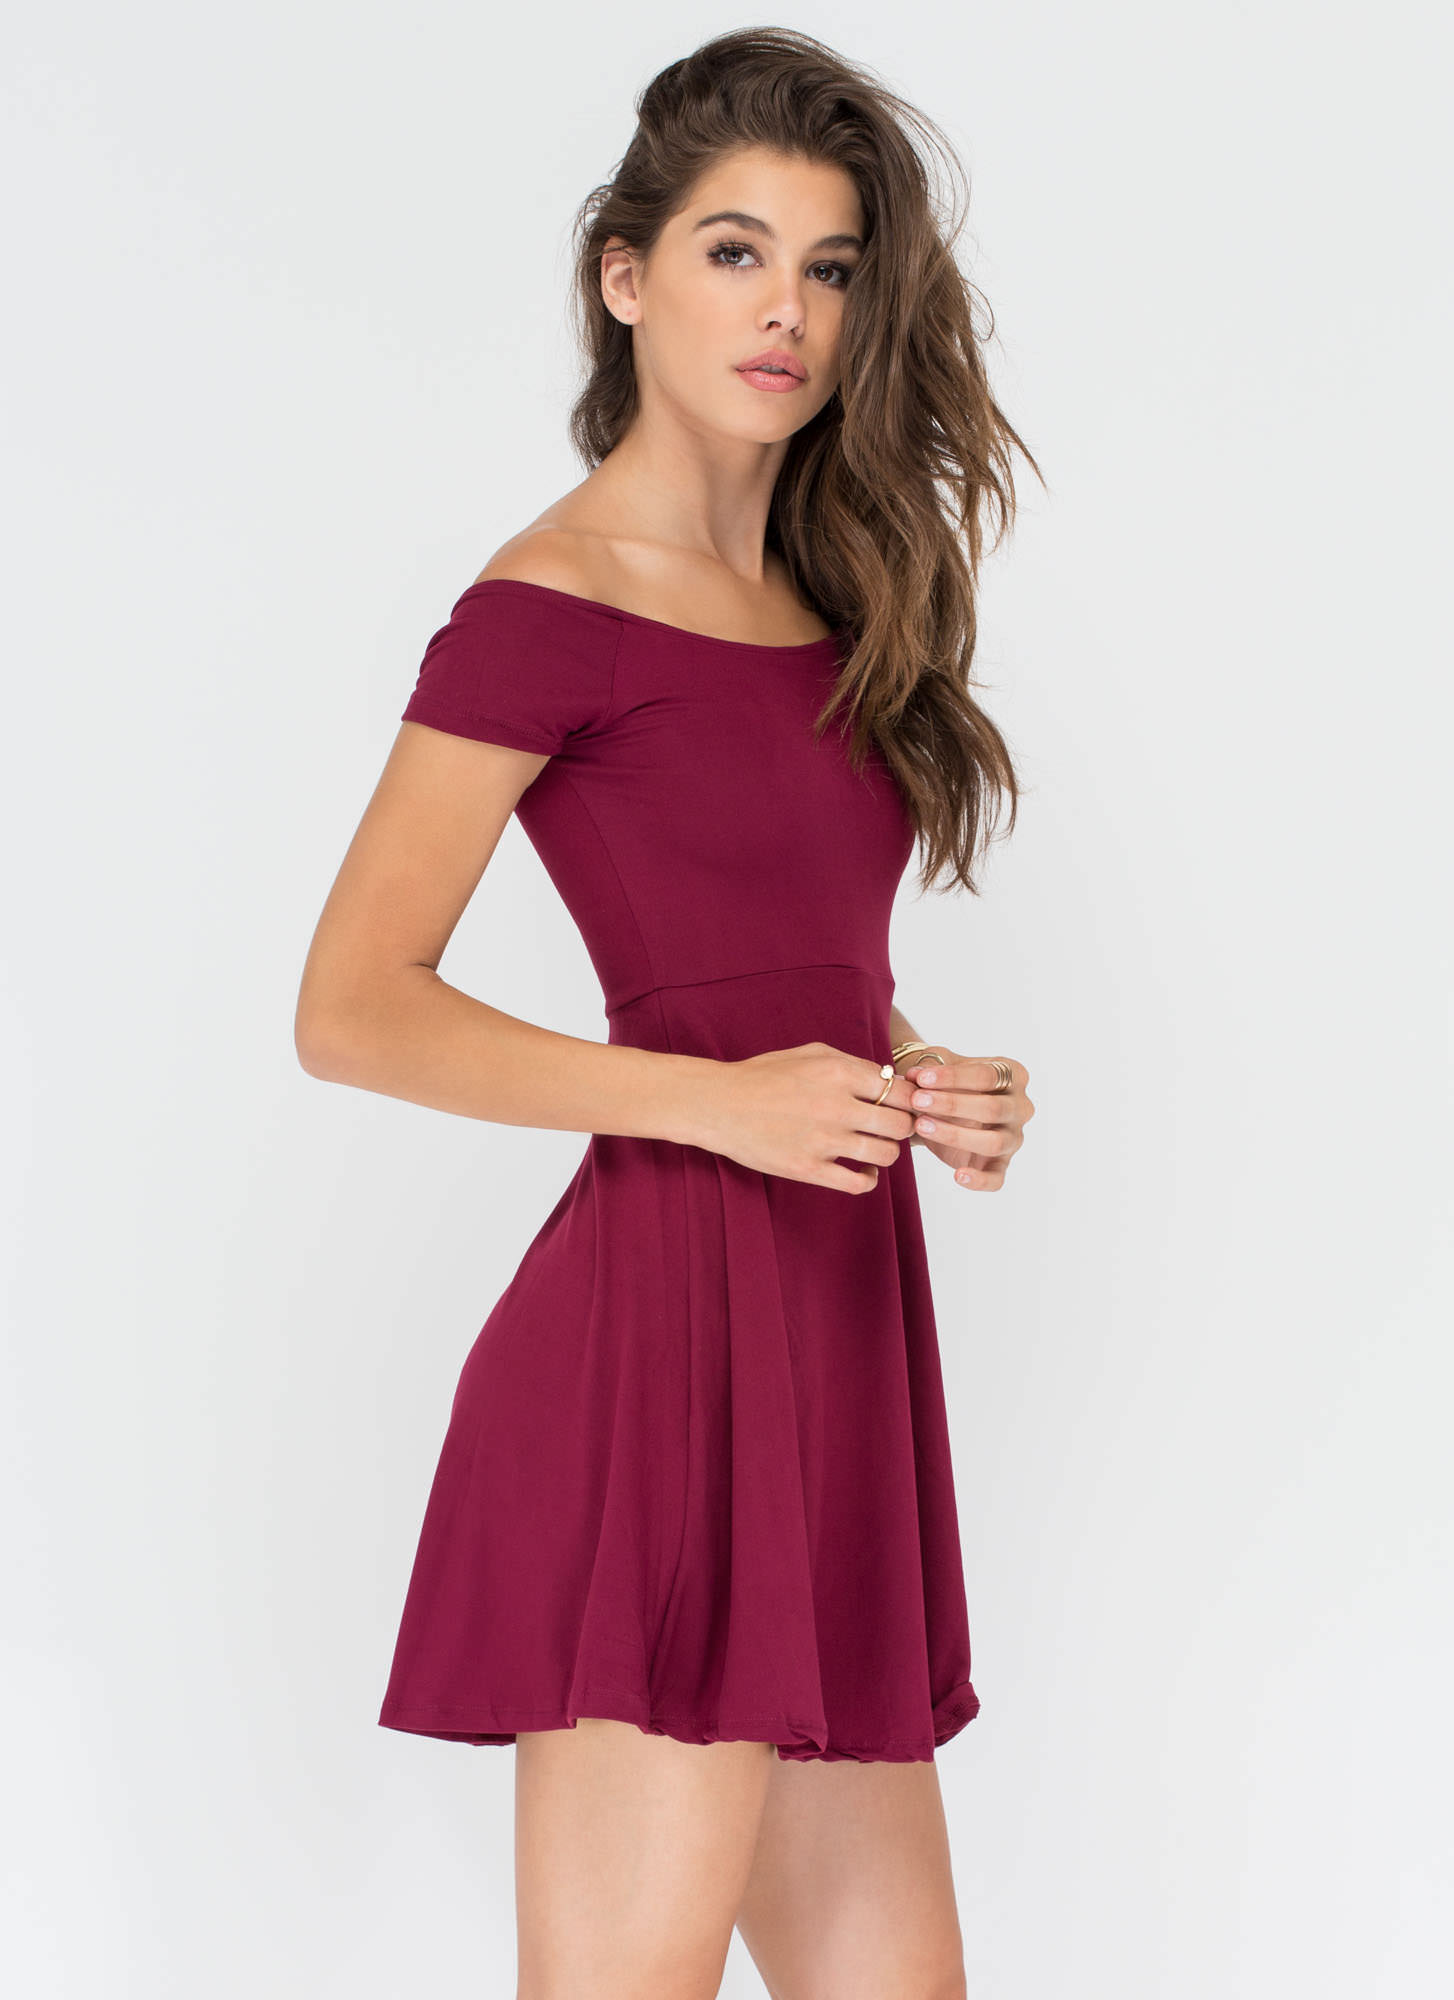 Pretty Twirl Skater Dress BURGUNDY